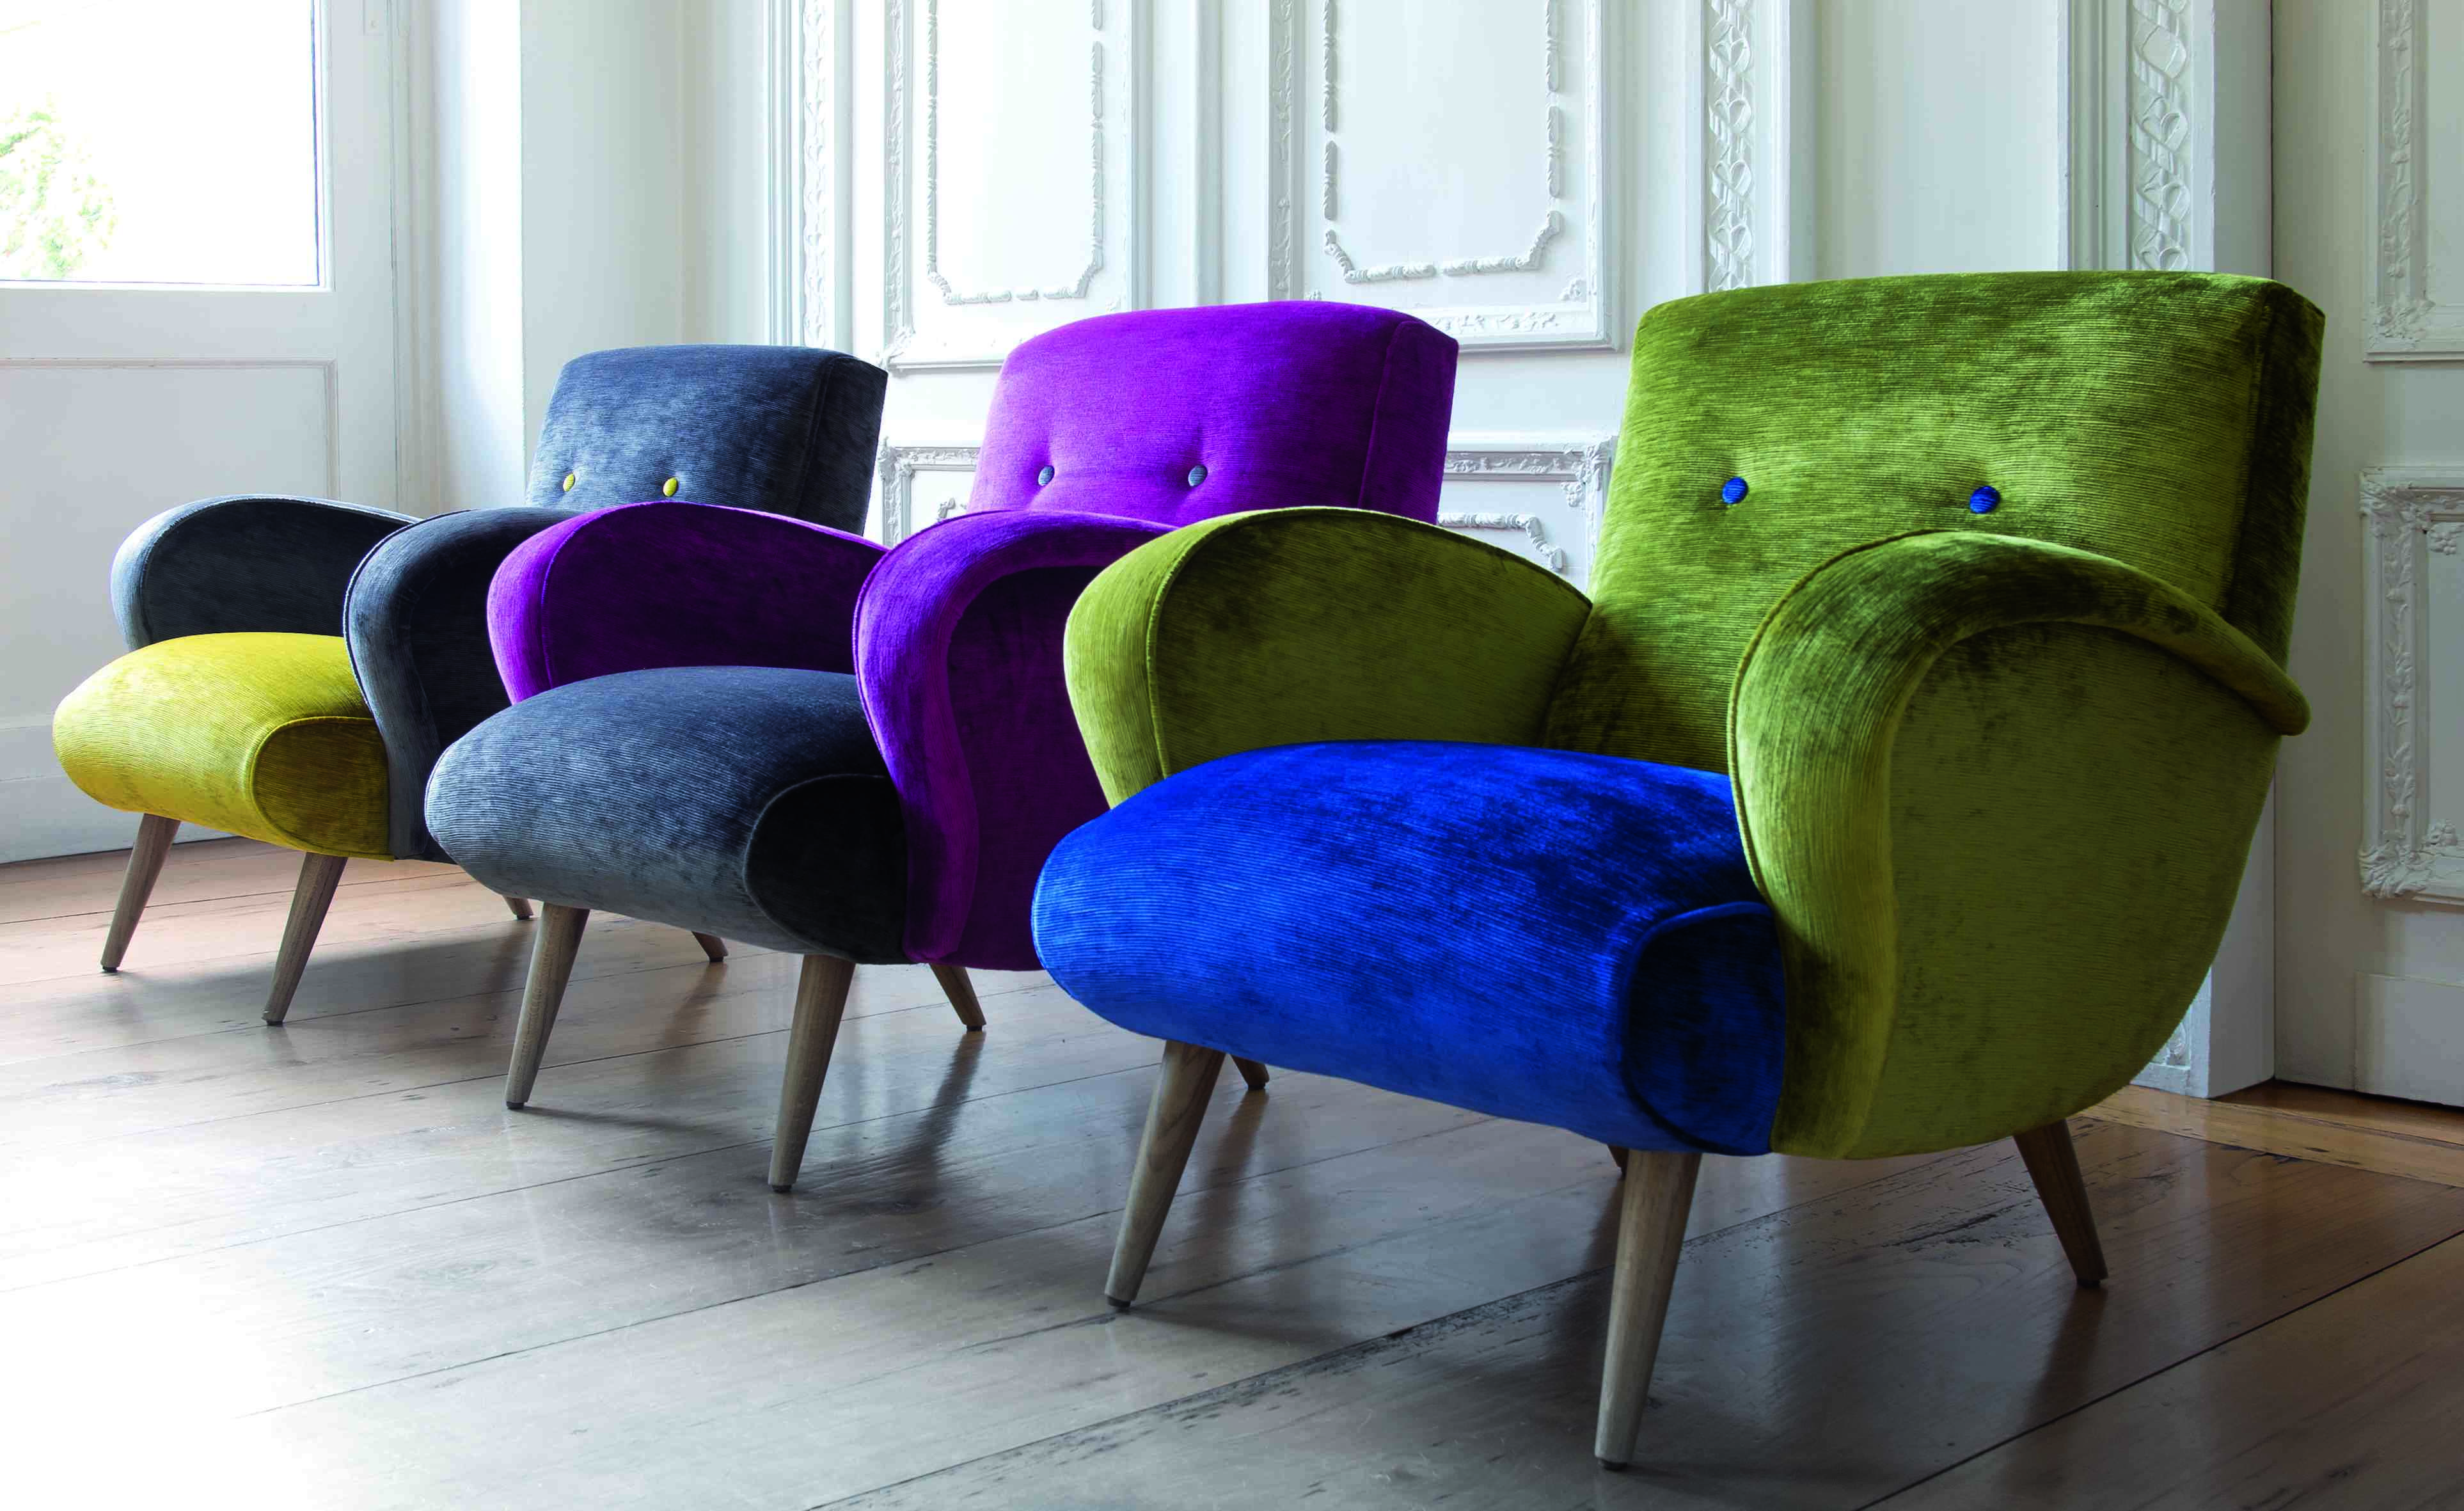 Velvet Armchair, Furniture Ideas, Casamance, Upholstery, Beautiful Sofas, Colorful Chairs,